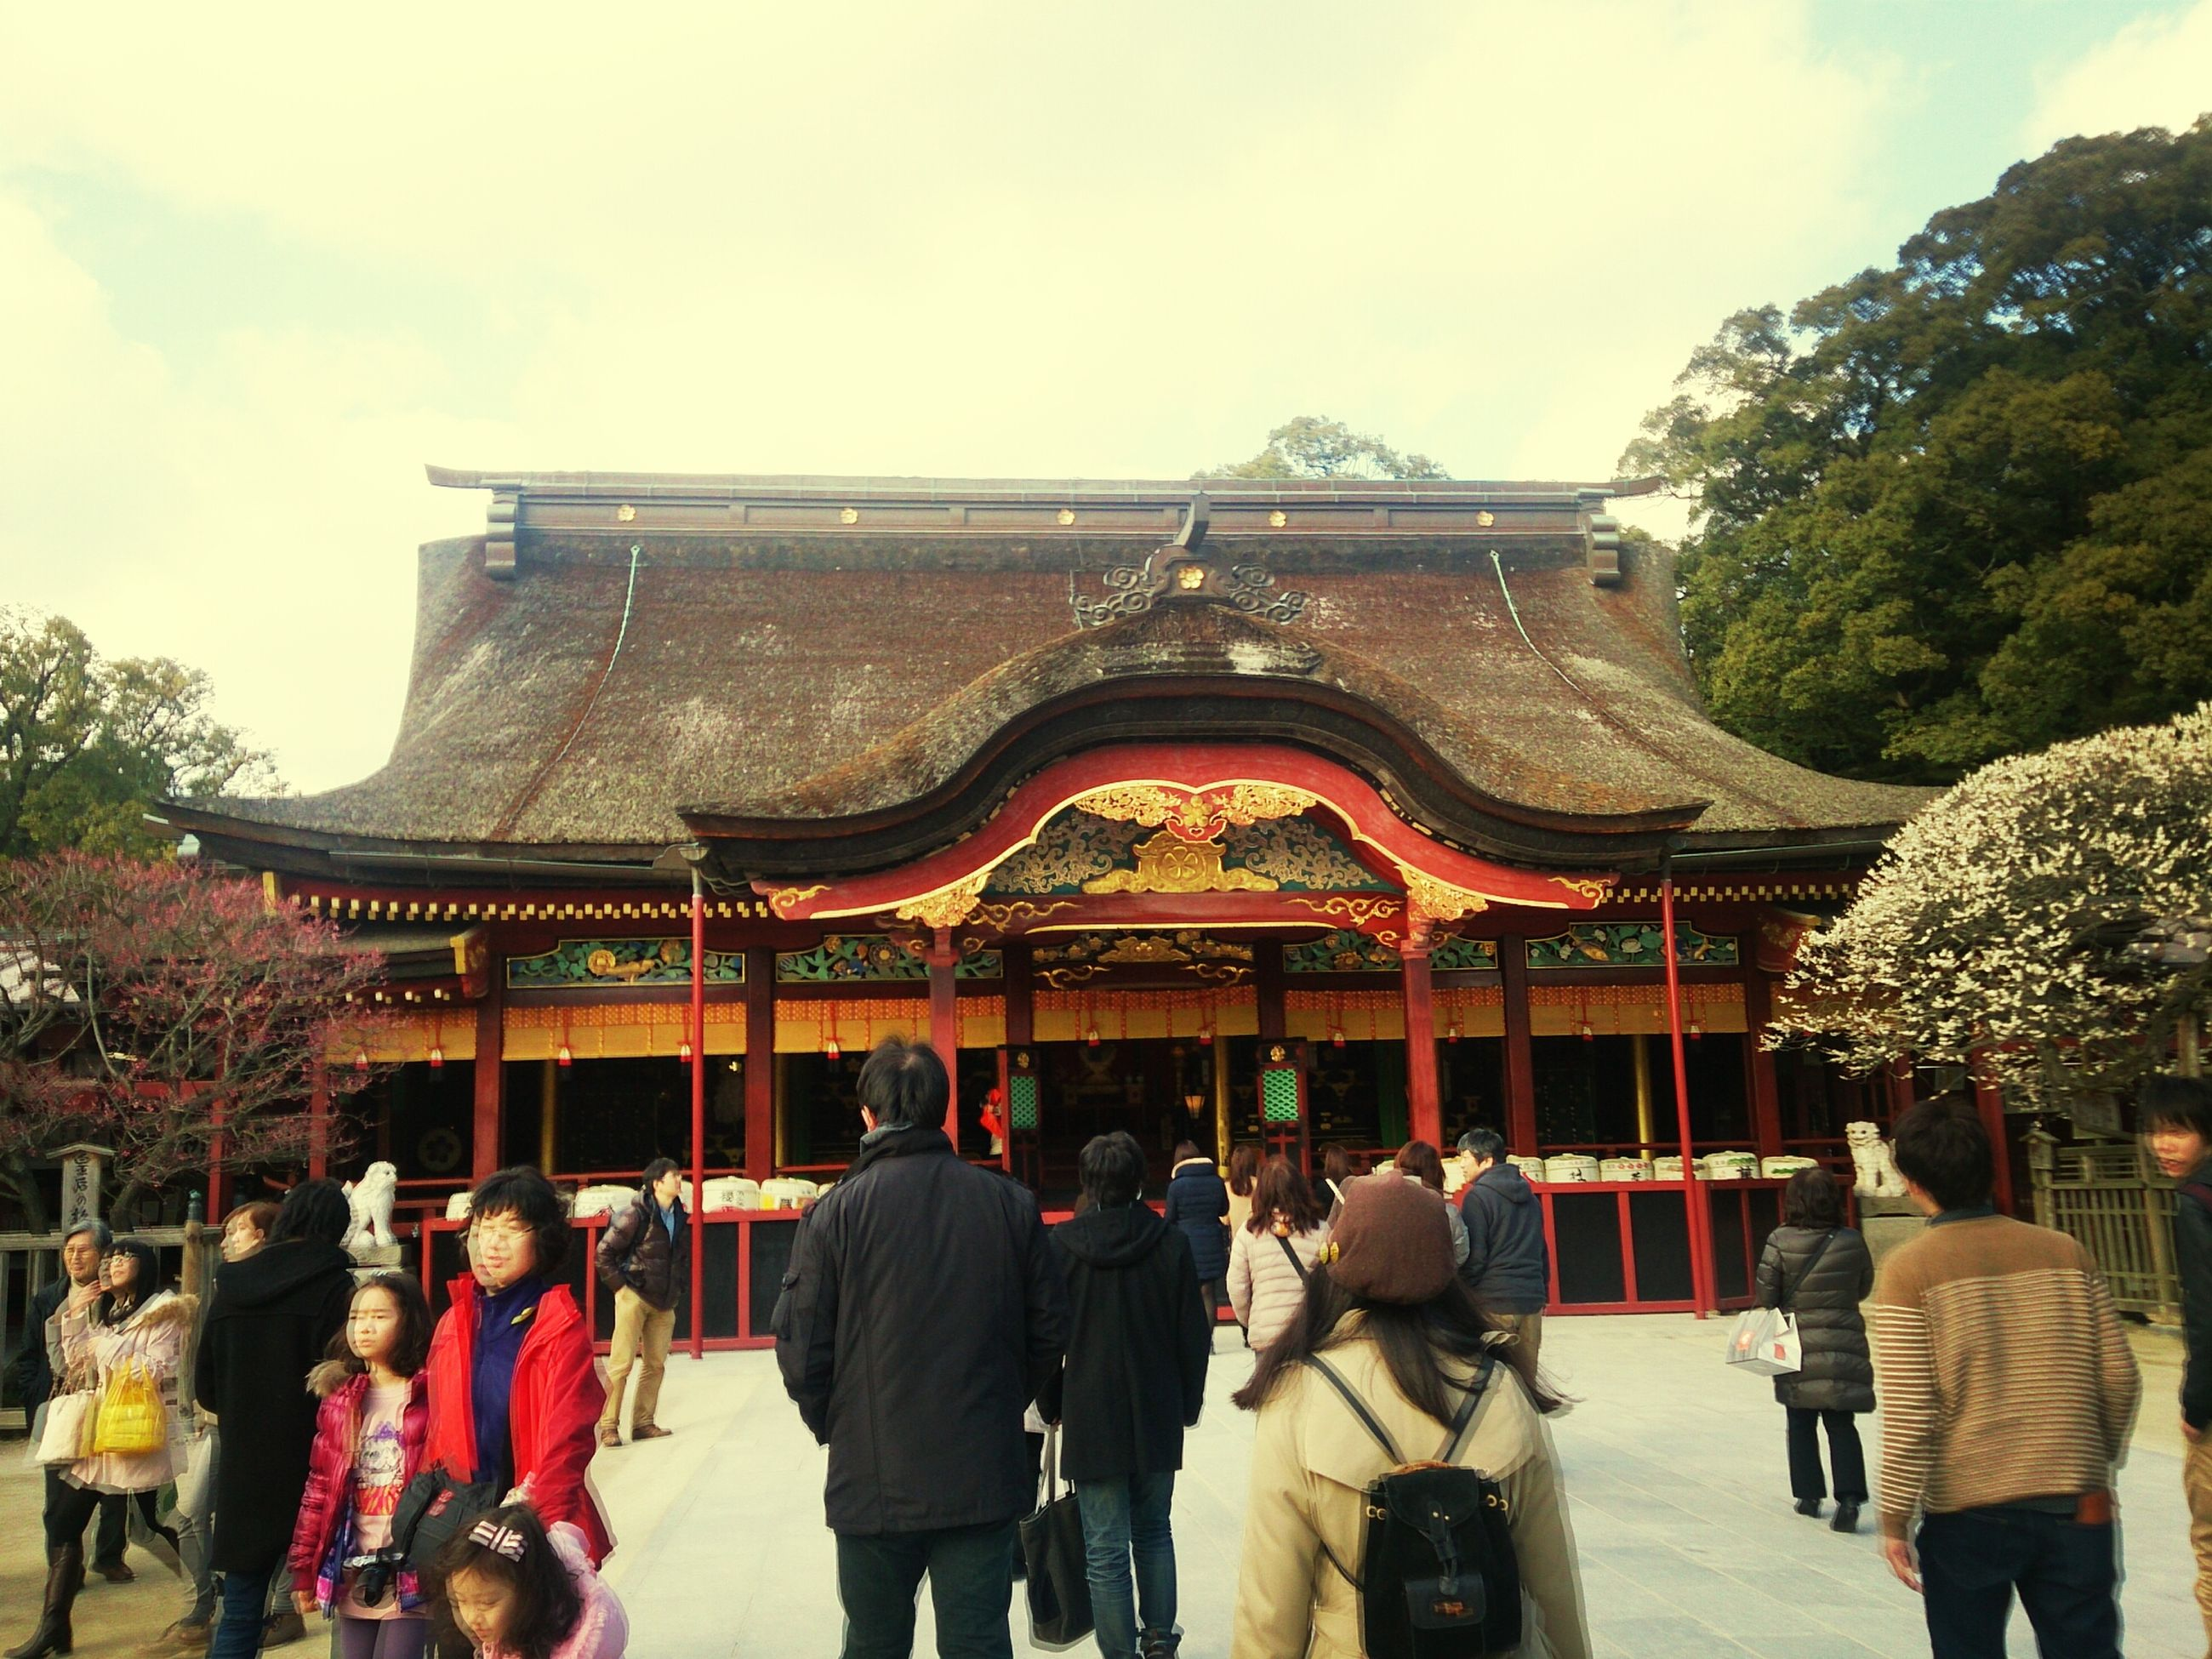 large group of people, person, men, lifestyles, architecture, built structure, leisure activity, building exterior, religion, cultures, tradition, temple - building, mixed age range, place of worship, tourist, spirituality, crowd, sky, tourism